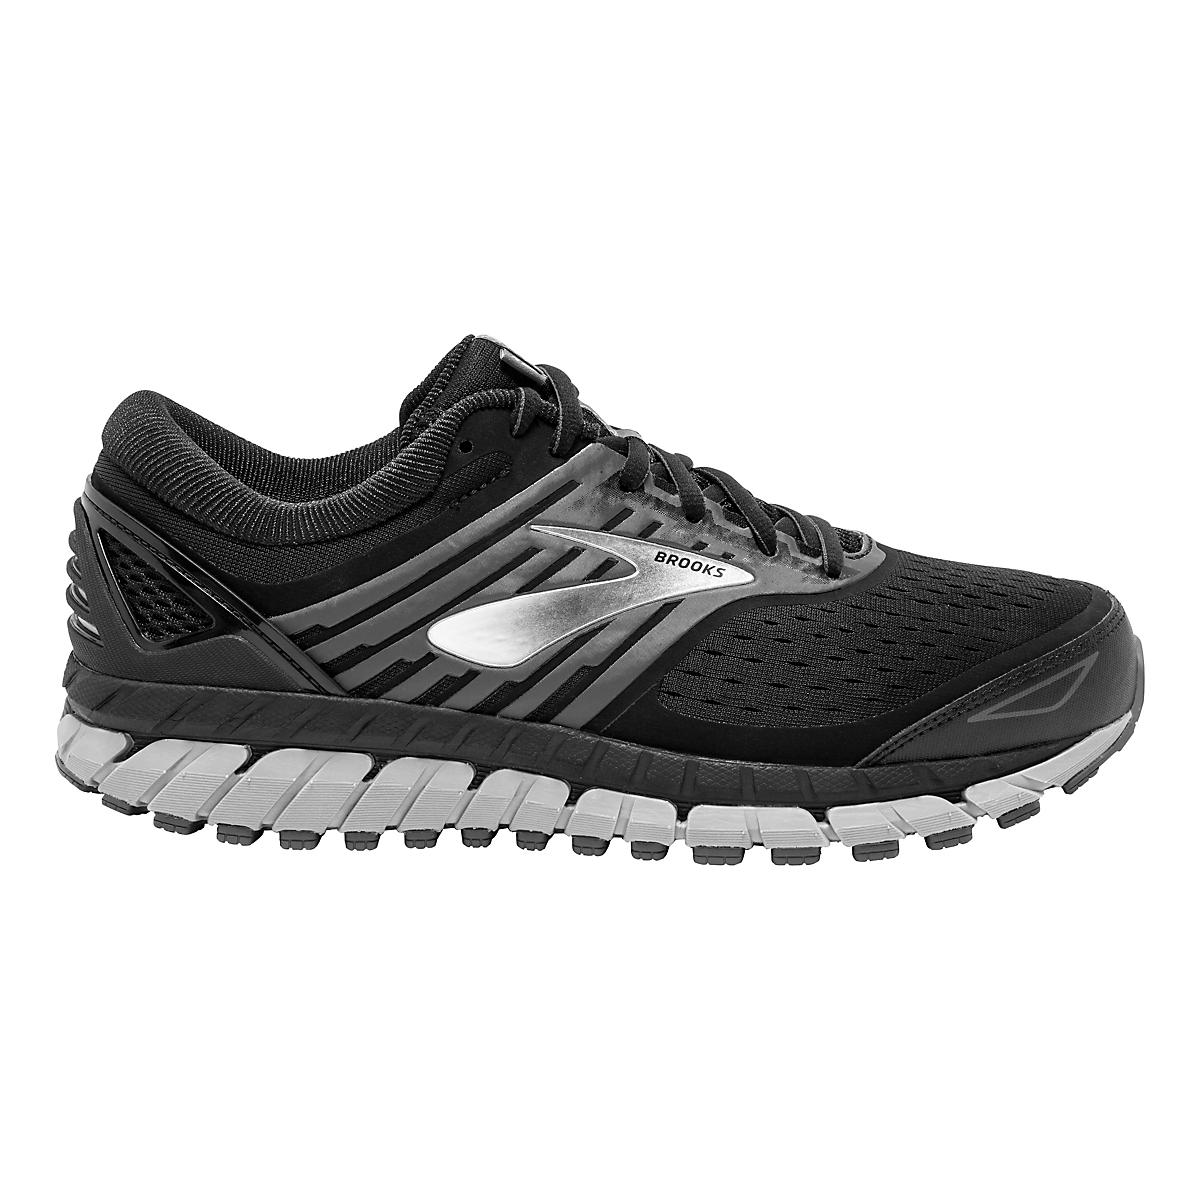 367de570524 Men s Brooks Beast 18 Running Shoes for Sale